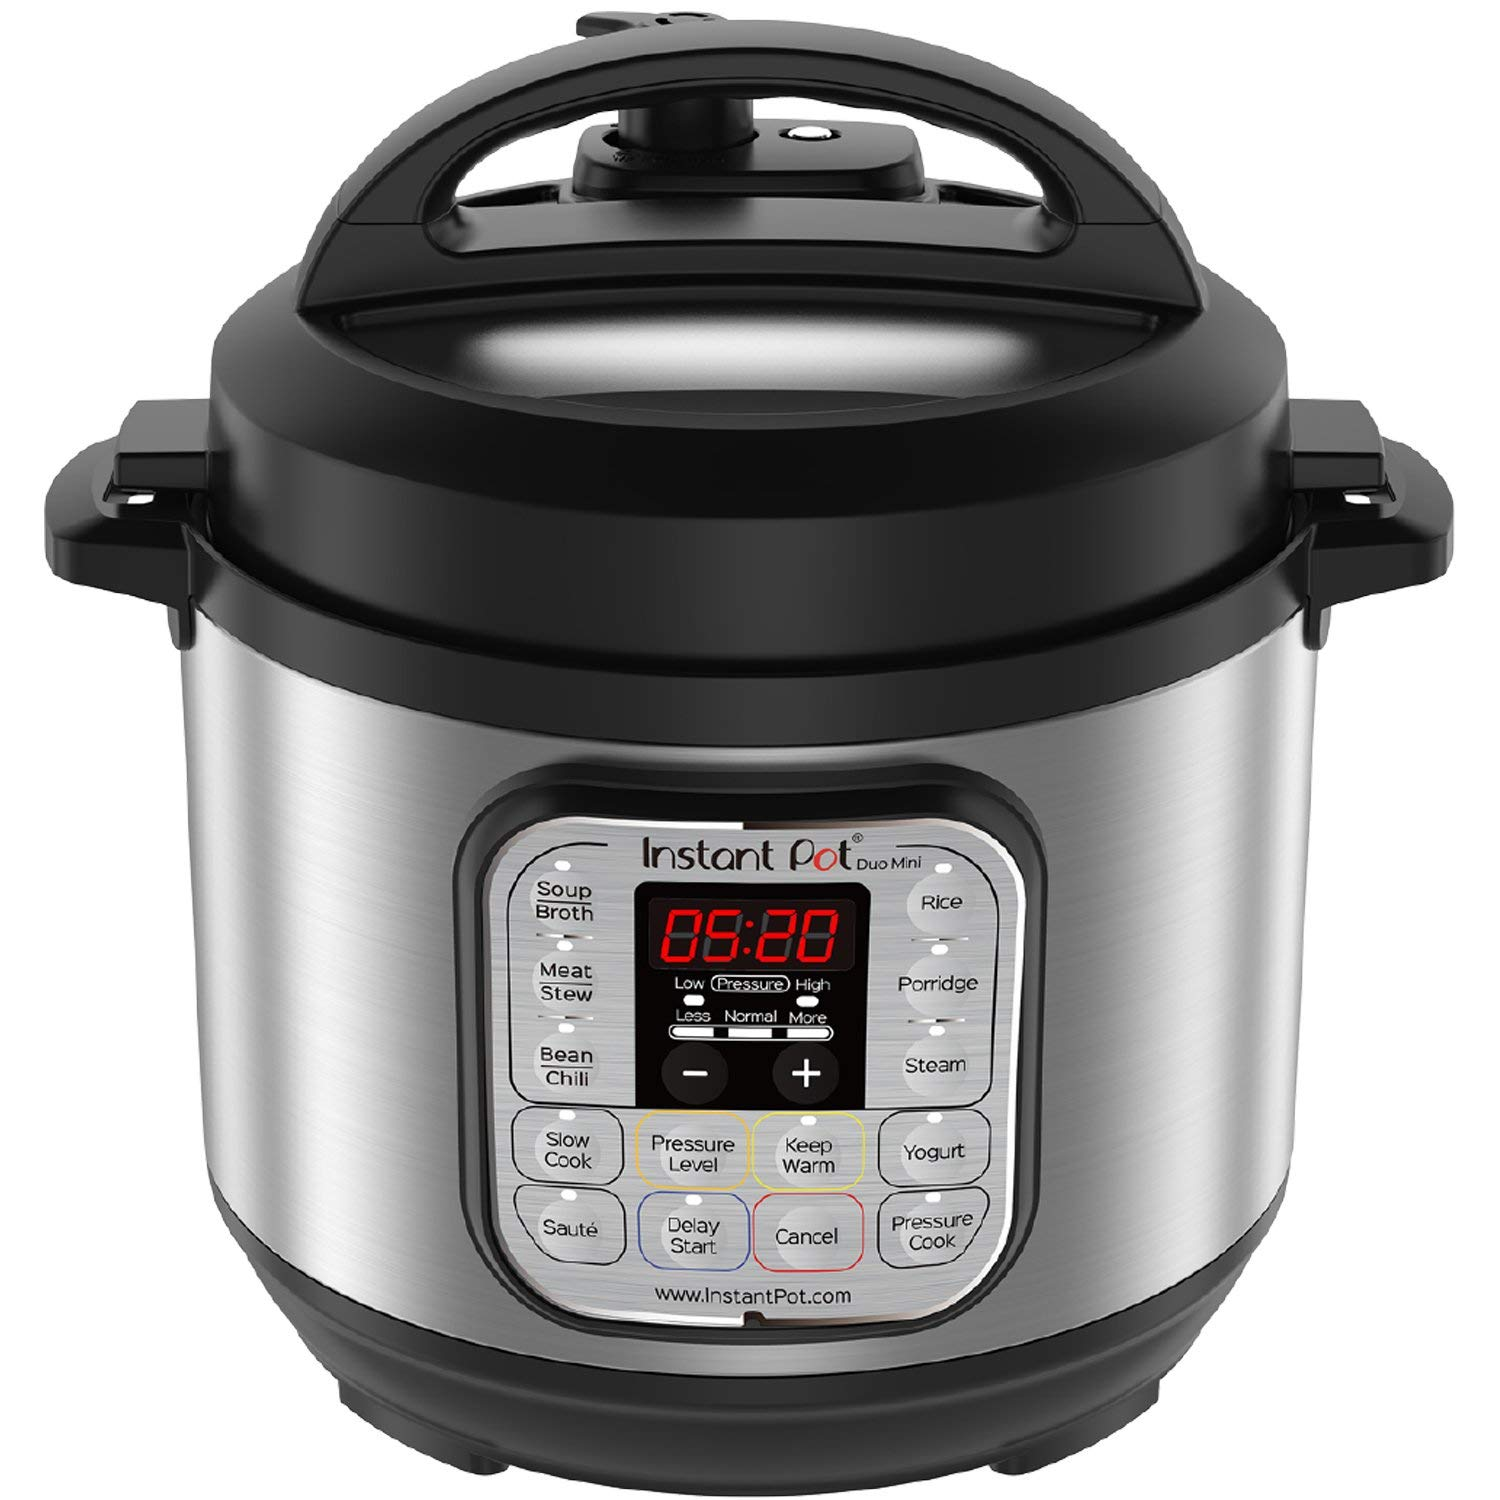 Instant Pot Duo Mini 3 Qt 7-in-1 Multi- Use Programmable Pressure Cooker, Slow Cooker, Rice Cooker, Steamer, Saute, Yogurt Maker and Warmer (Certified Refurbished)